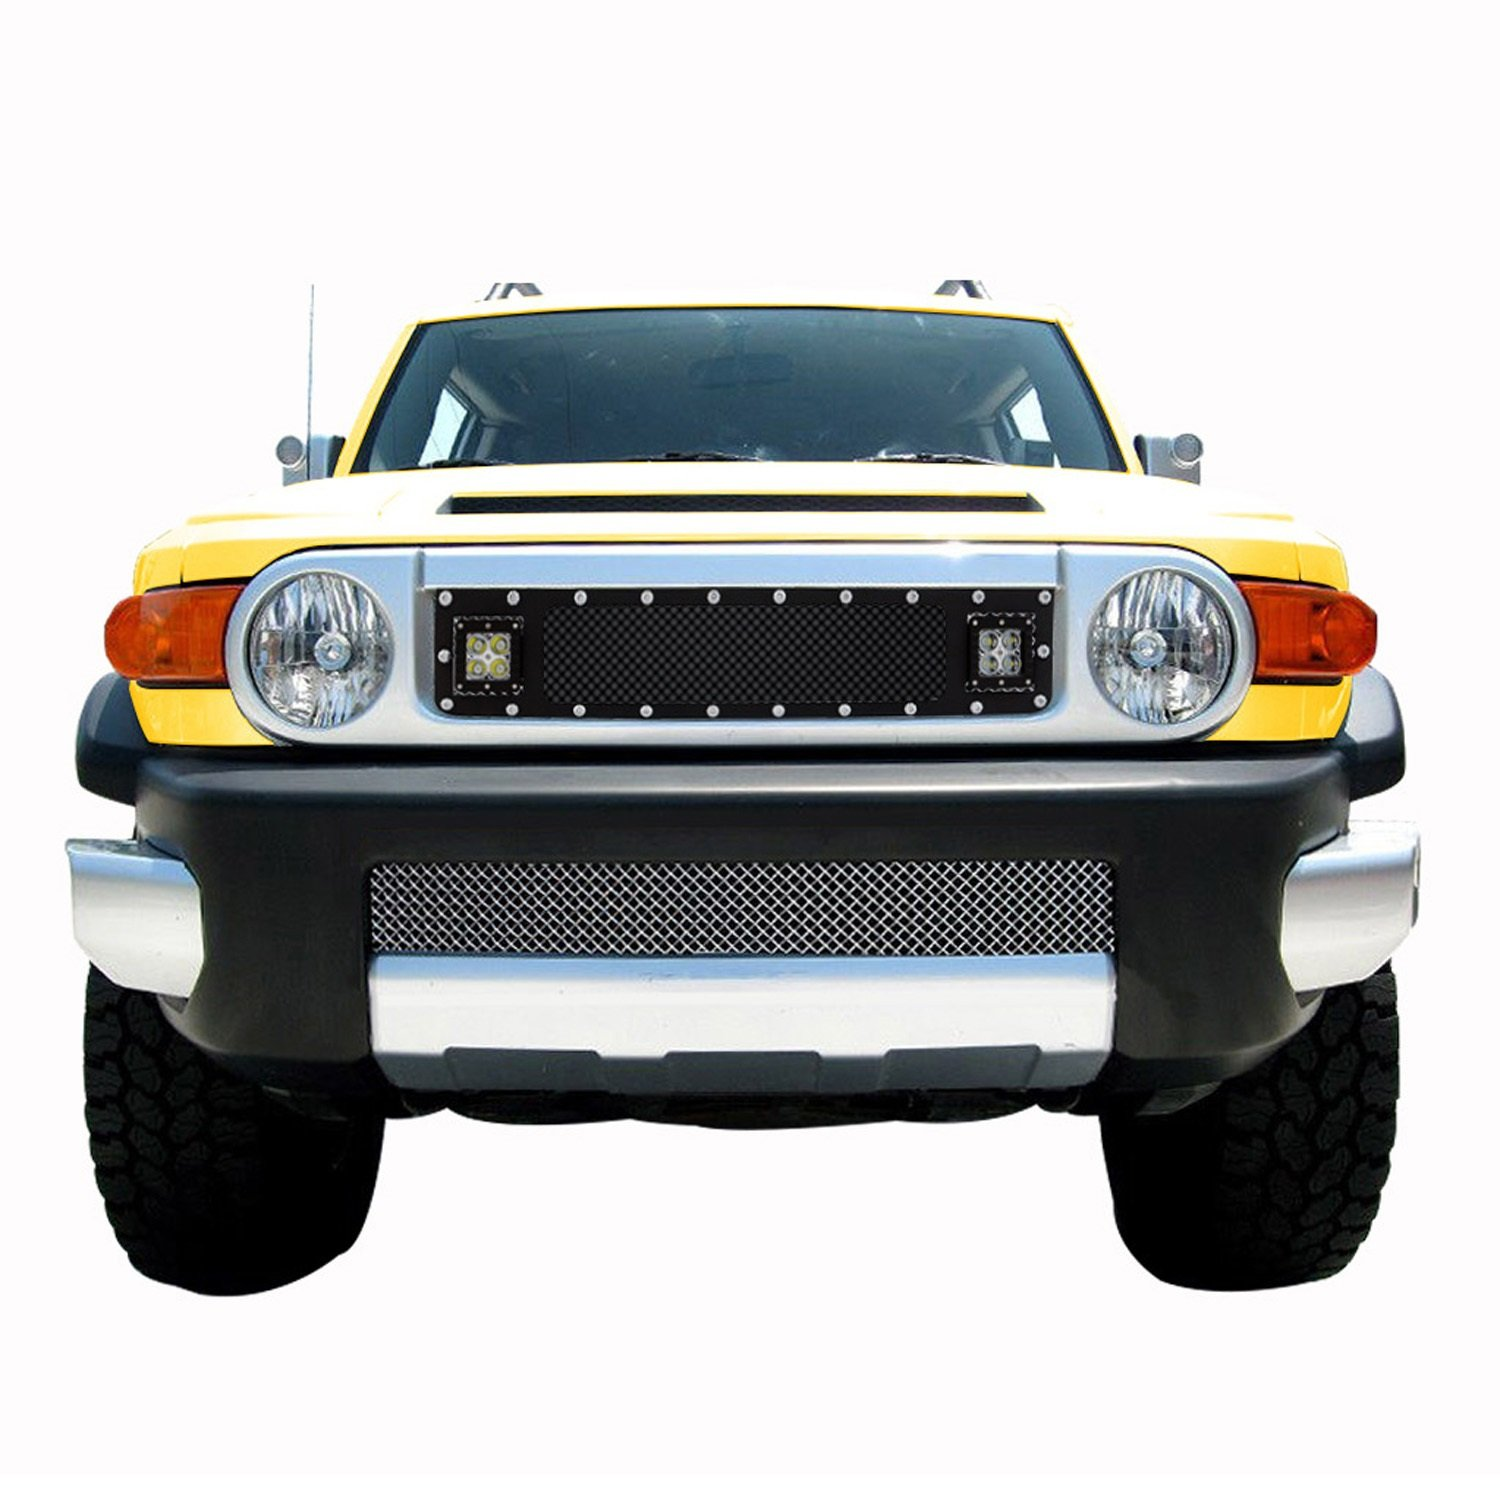 Paramount Restyling 48-0969 Black 07-14 Toyota FJ Cruiser Evolution Stainless Steel Wire Mesh Cutout Grille with LED-1pc